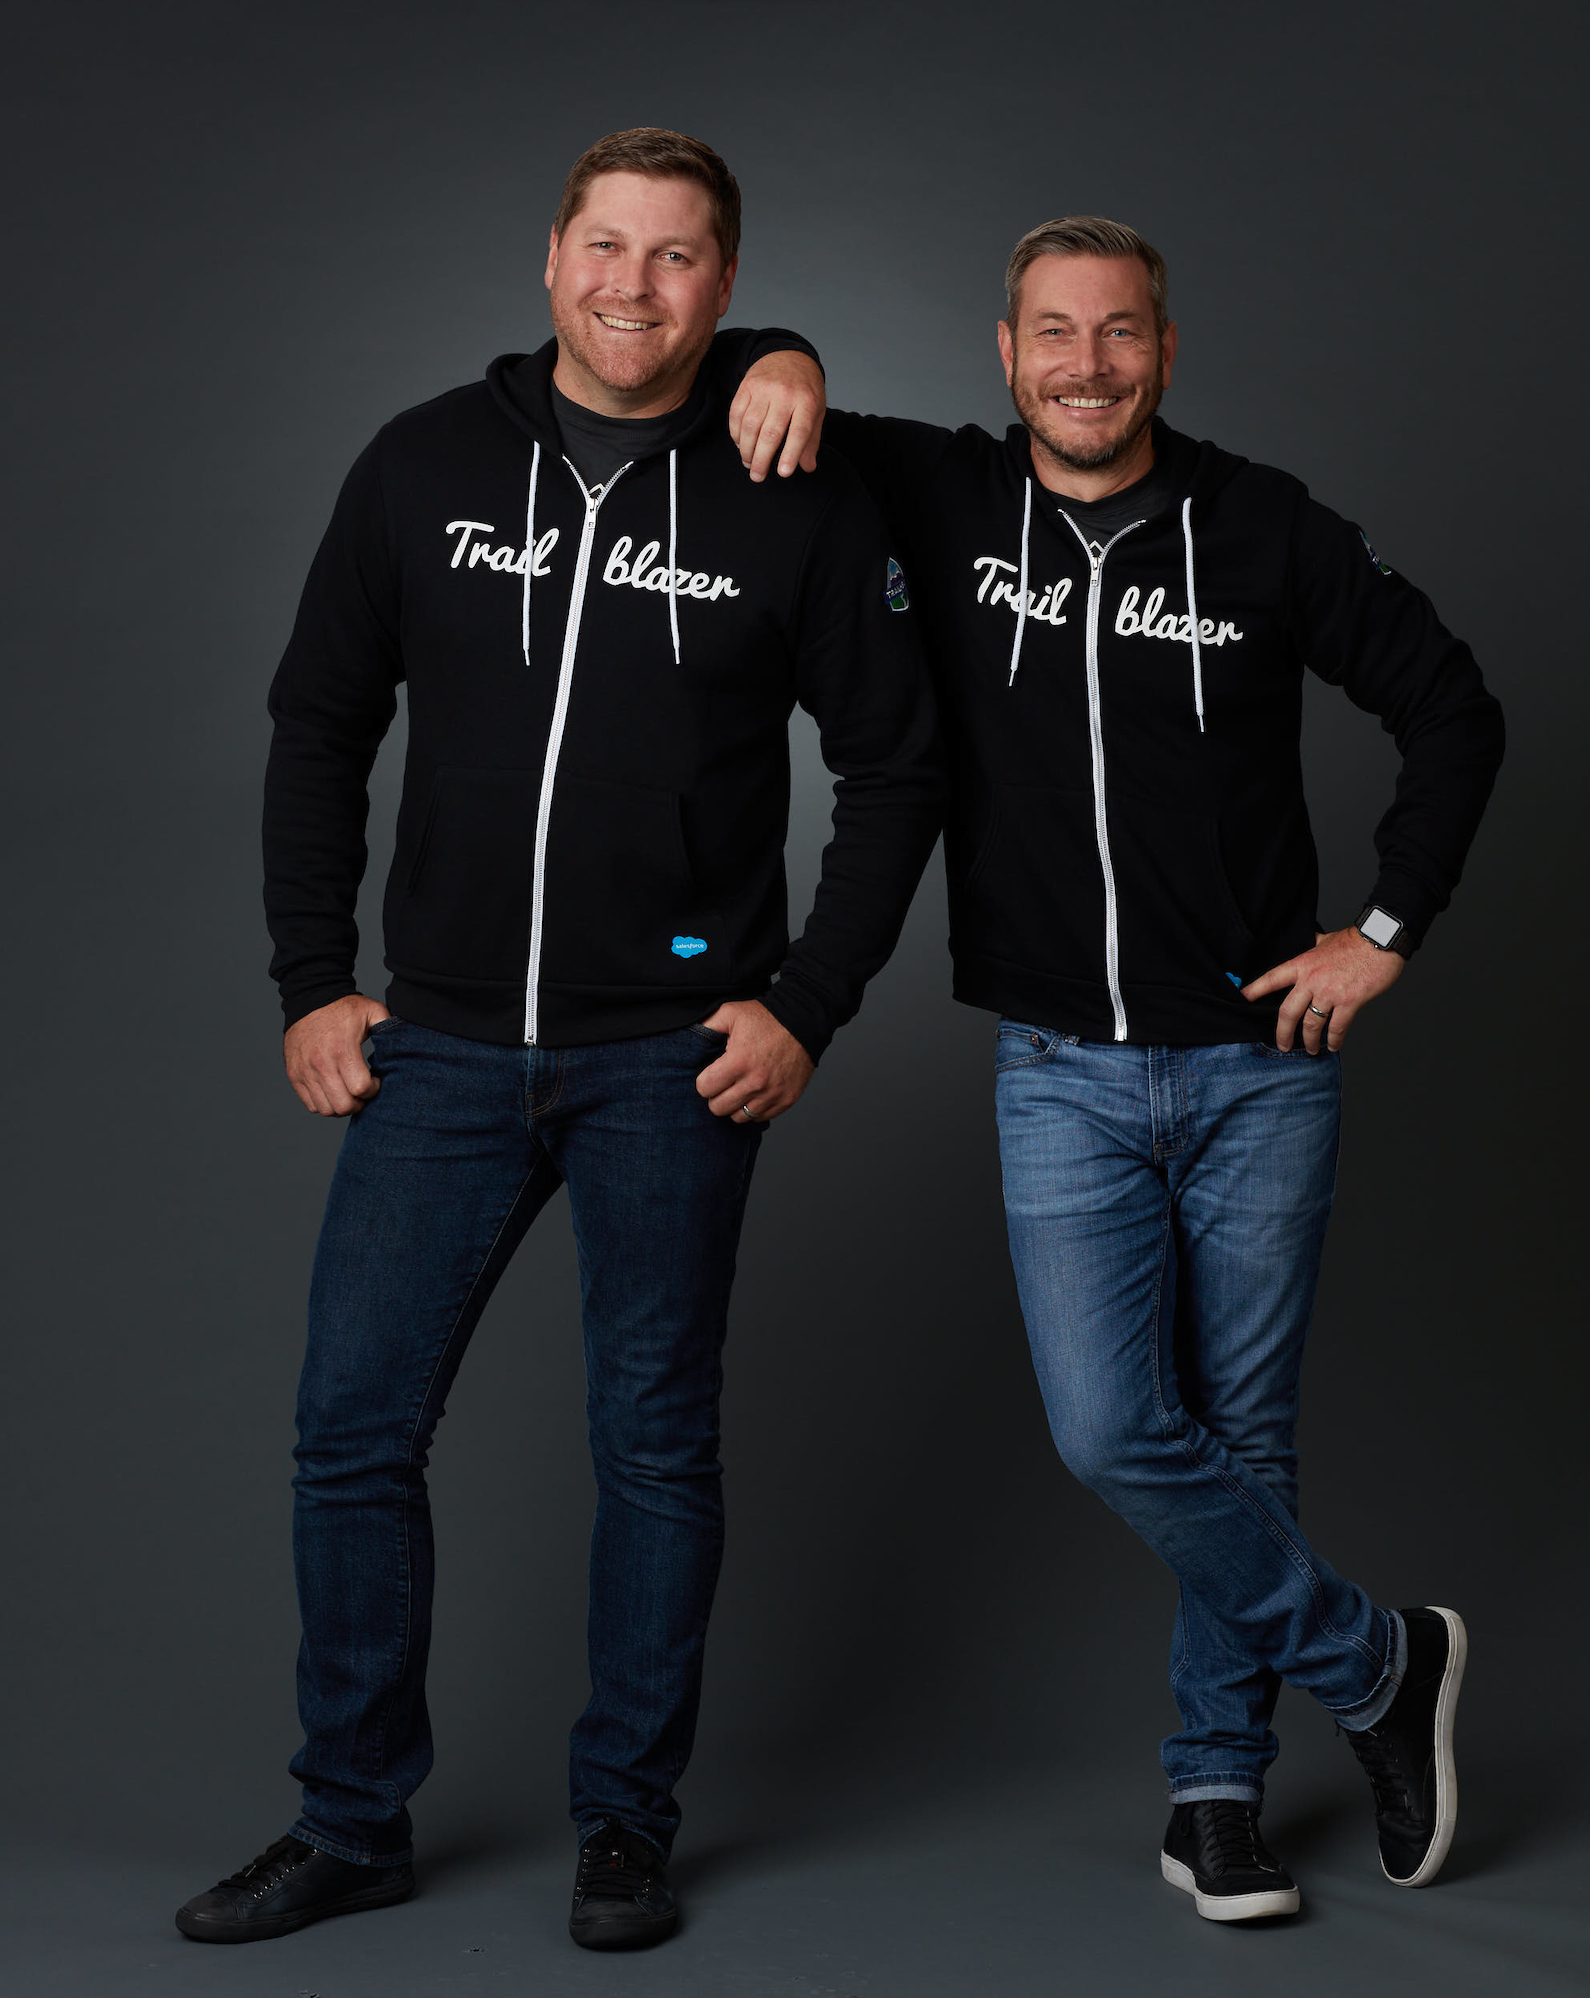 Qualified's Co-Founders Kraig Swensrud and Sean Whiteley are Salesforce Trailblazers